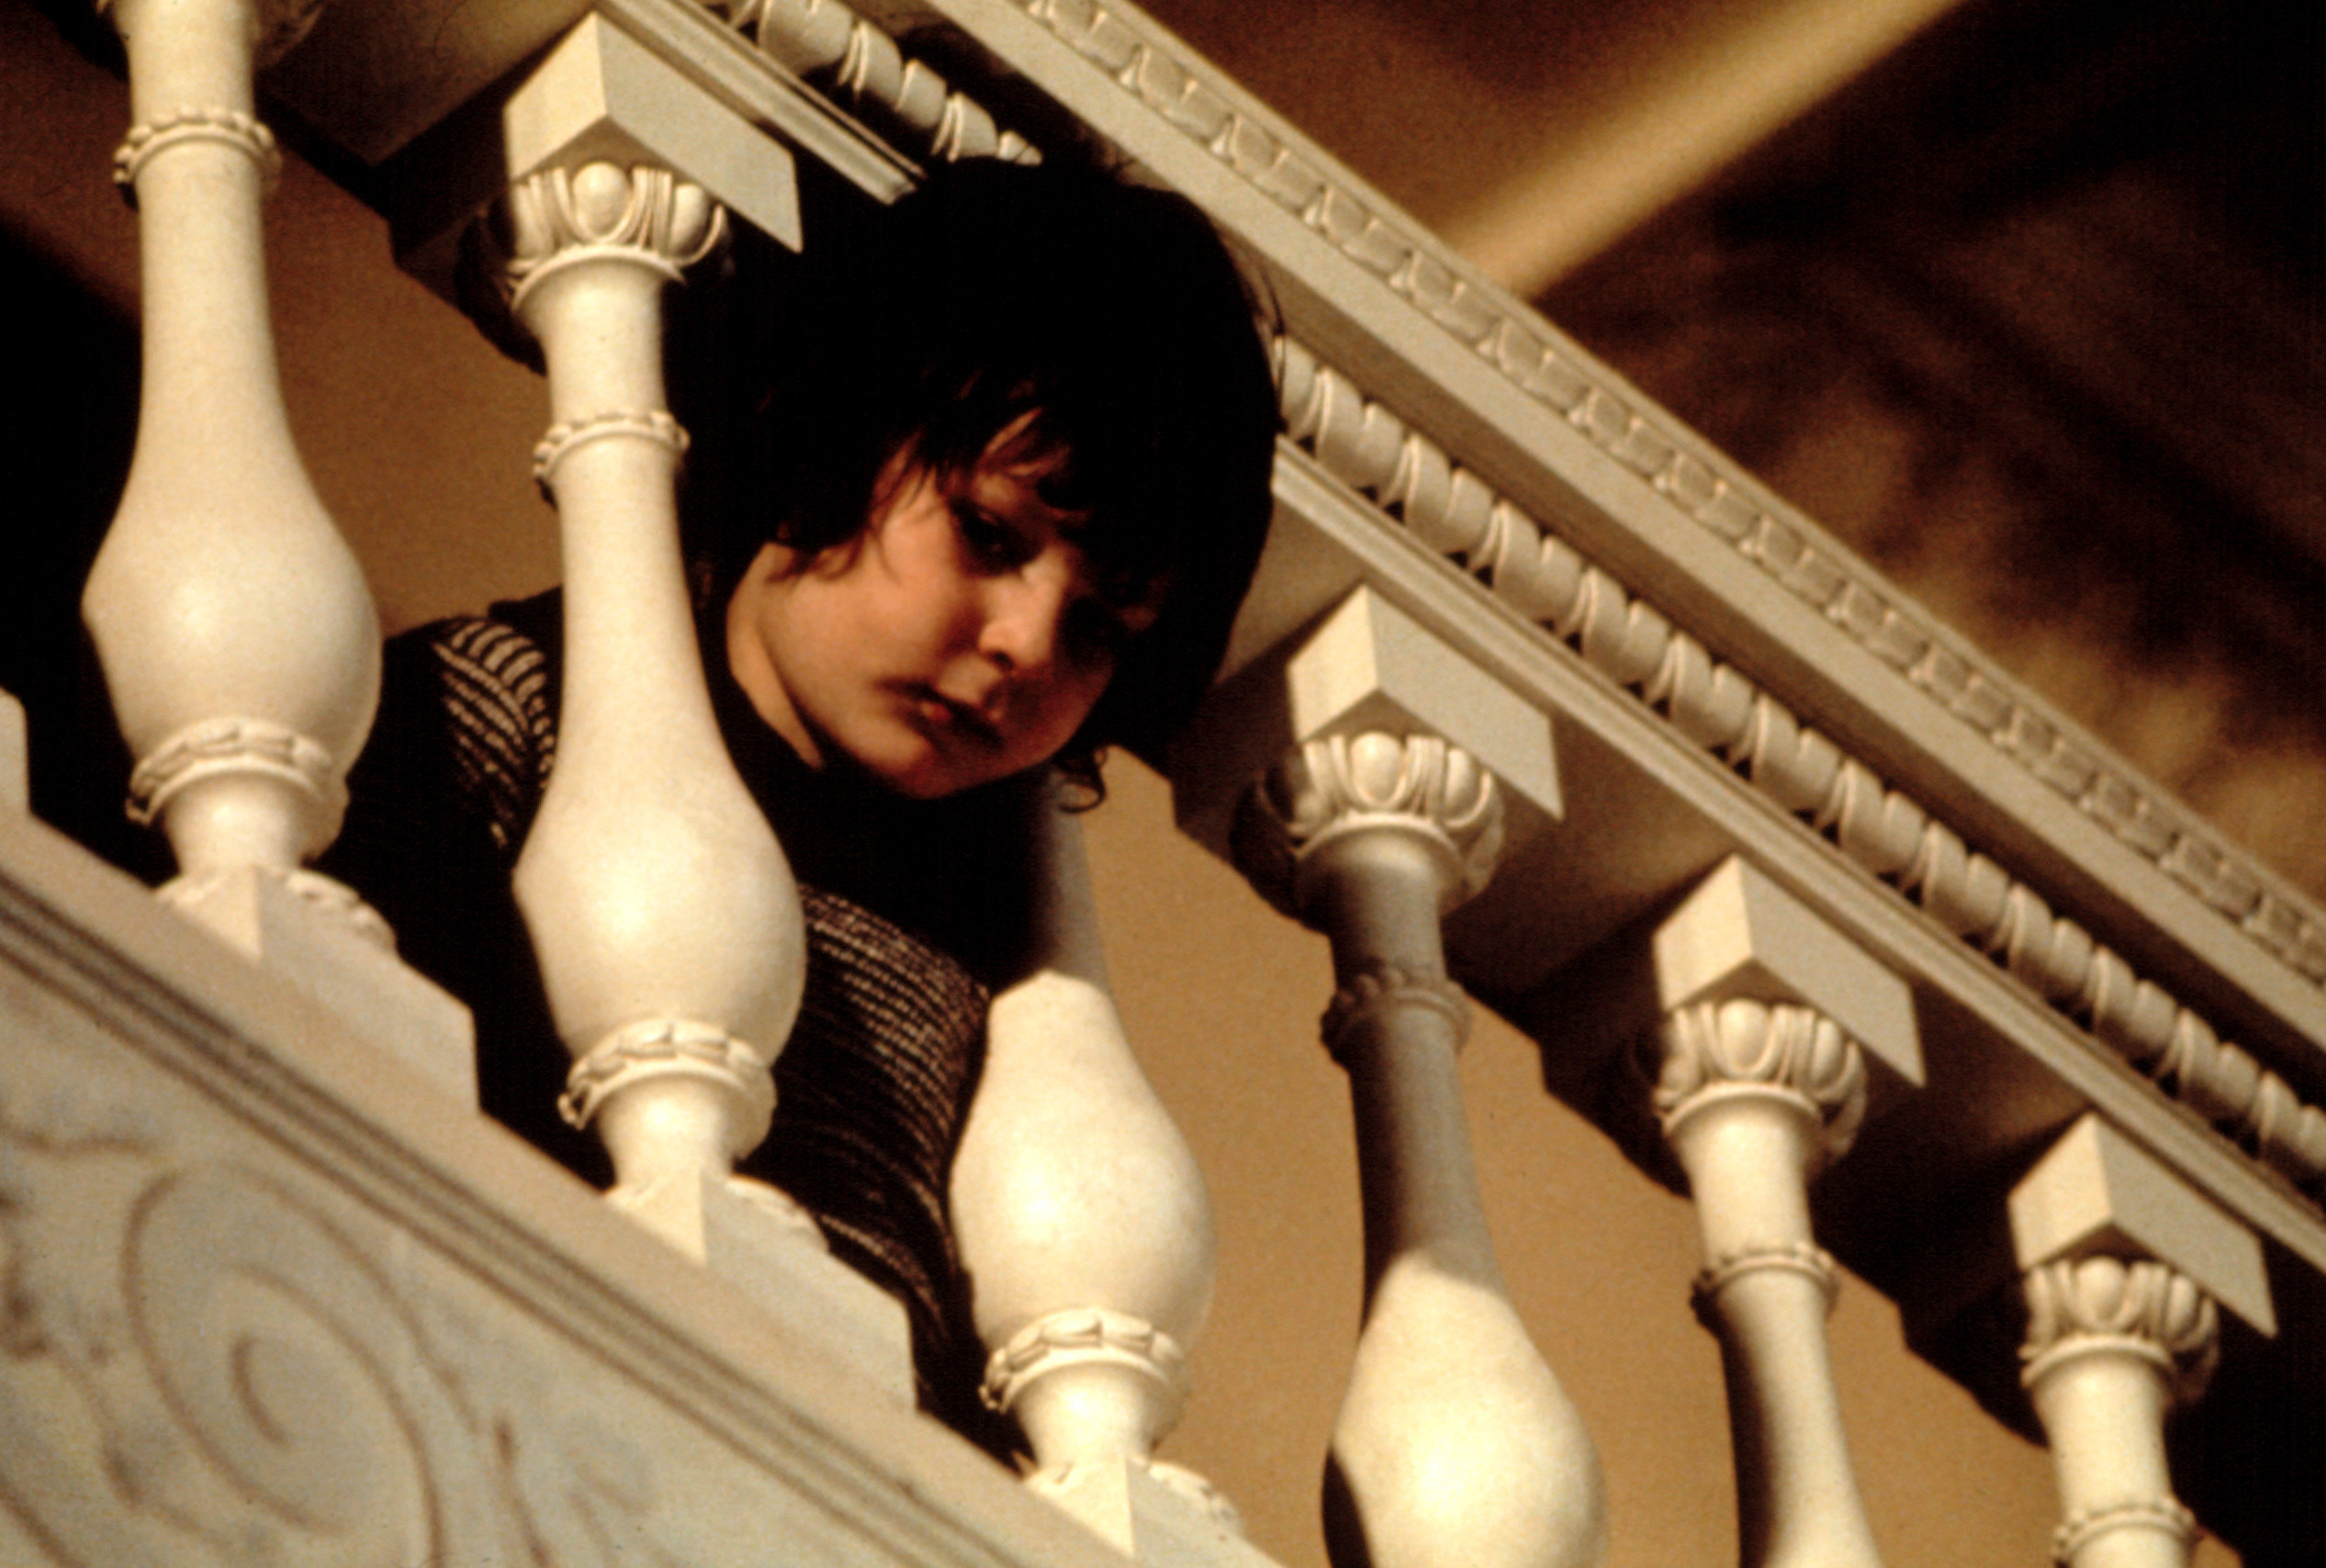 Harvey Stephens has his head between the bannisters